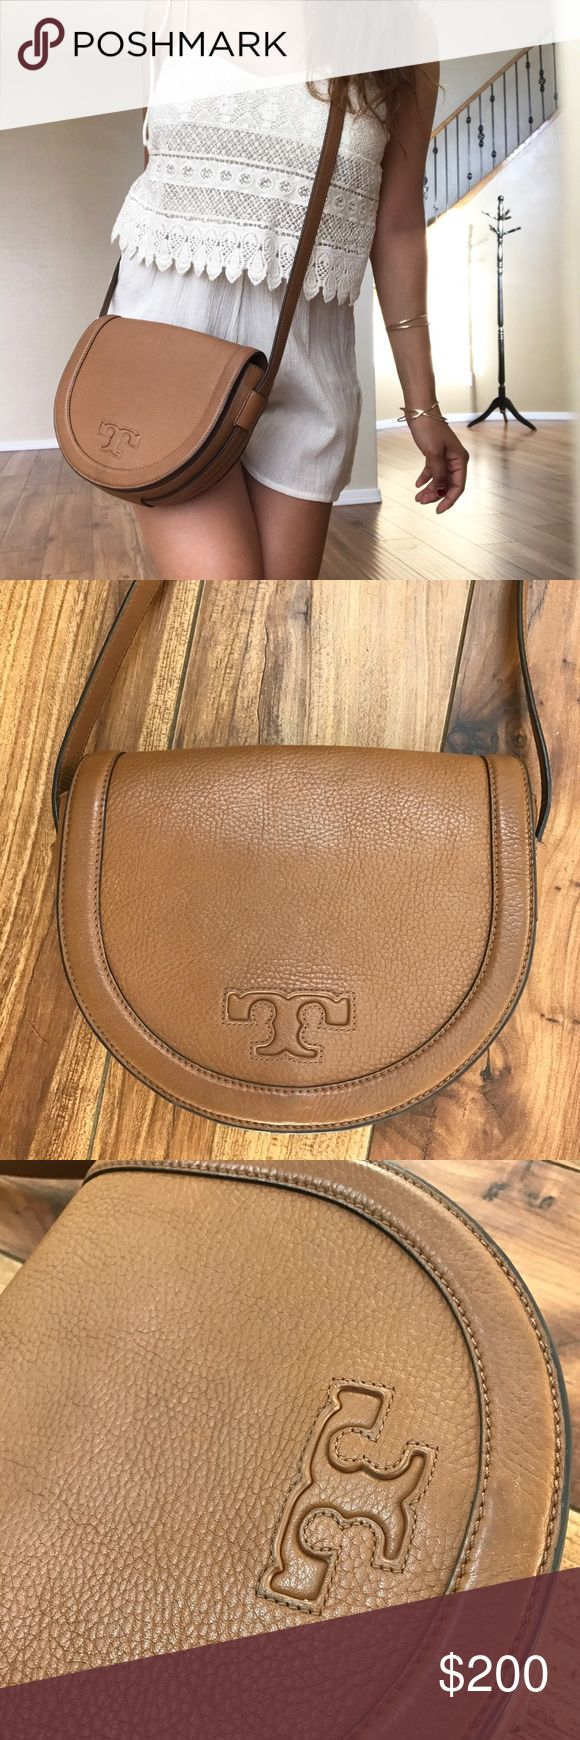 • Tory Burch Crossbody • This saddle brown leather crossbody is the perfect size to fit all of your needs! It's called the Tory Burch Serif T Leather Saddle Bag, Bark. It features the classic Tory Burch brand symbol, magnetic flap, back pocket, & interior zipper pocket. It does have a little bit of denim stain on the inside, but honestly not visible since that side is not shown when wearing it.  • Ask all questions prior to purchase • Bundle & save  • Feel free to make your best offer…